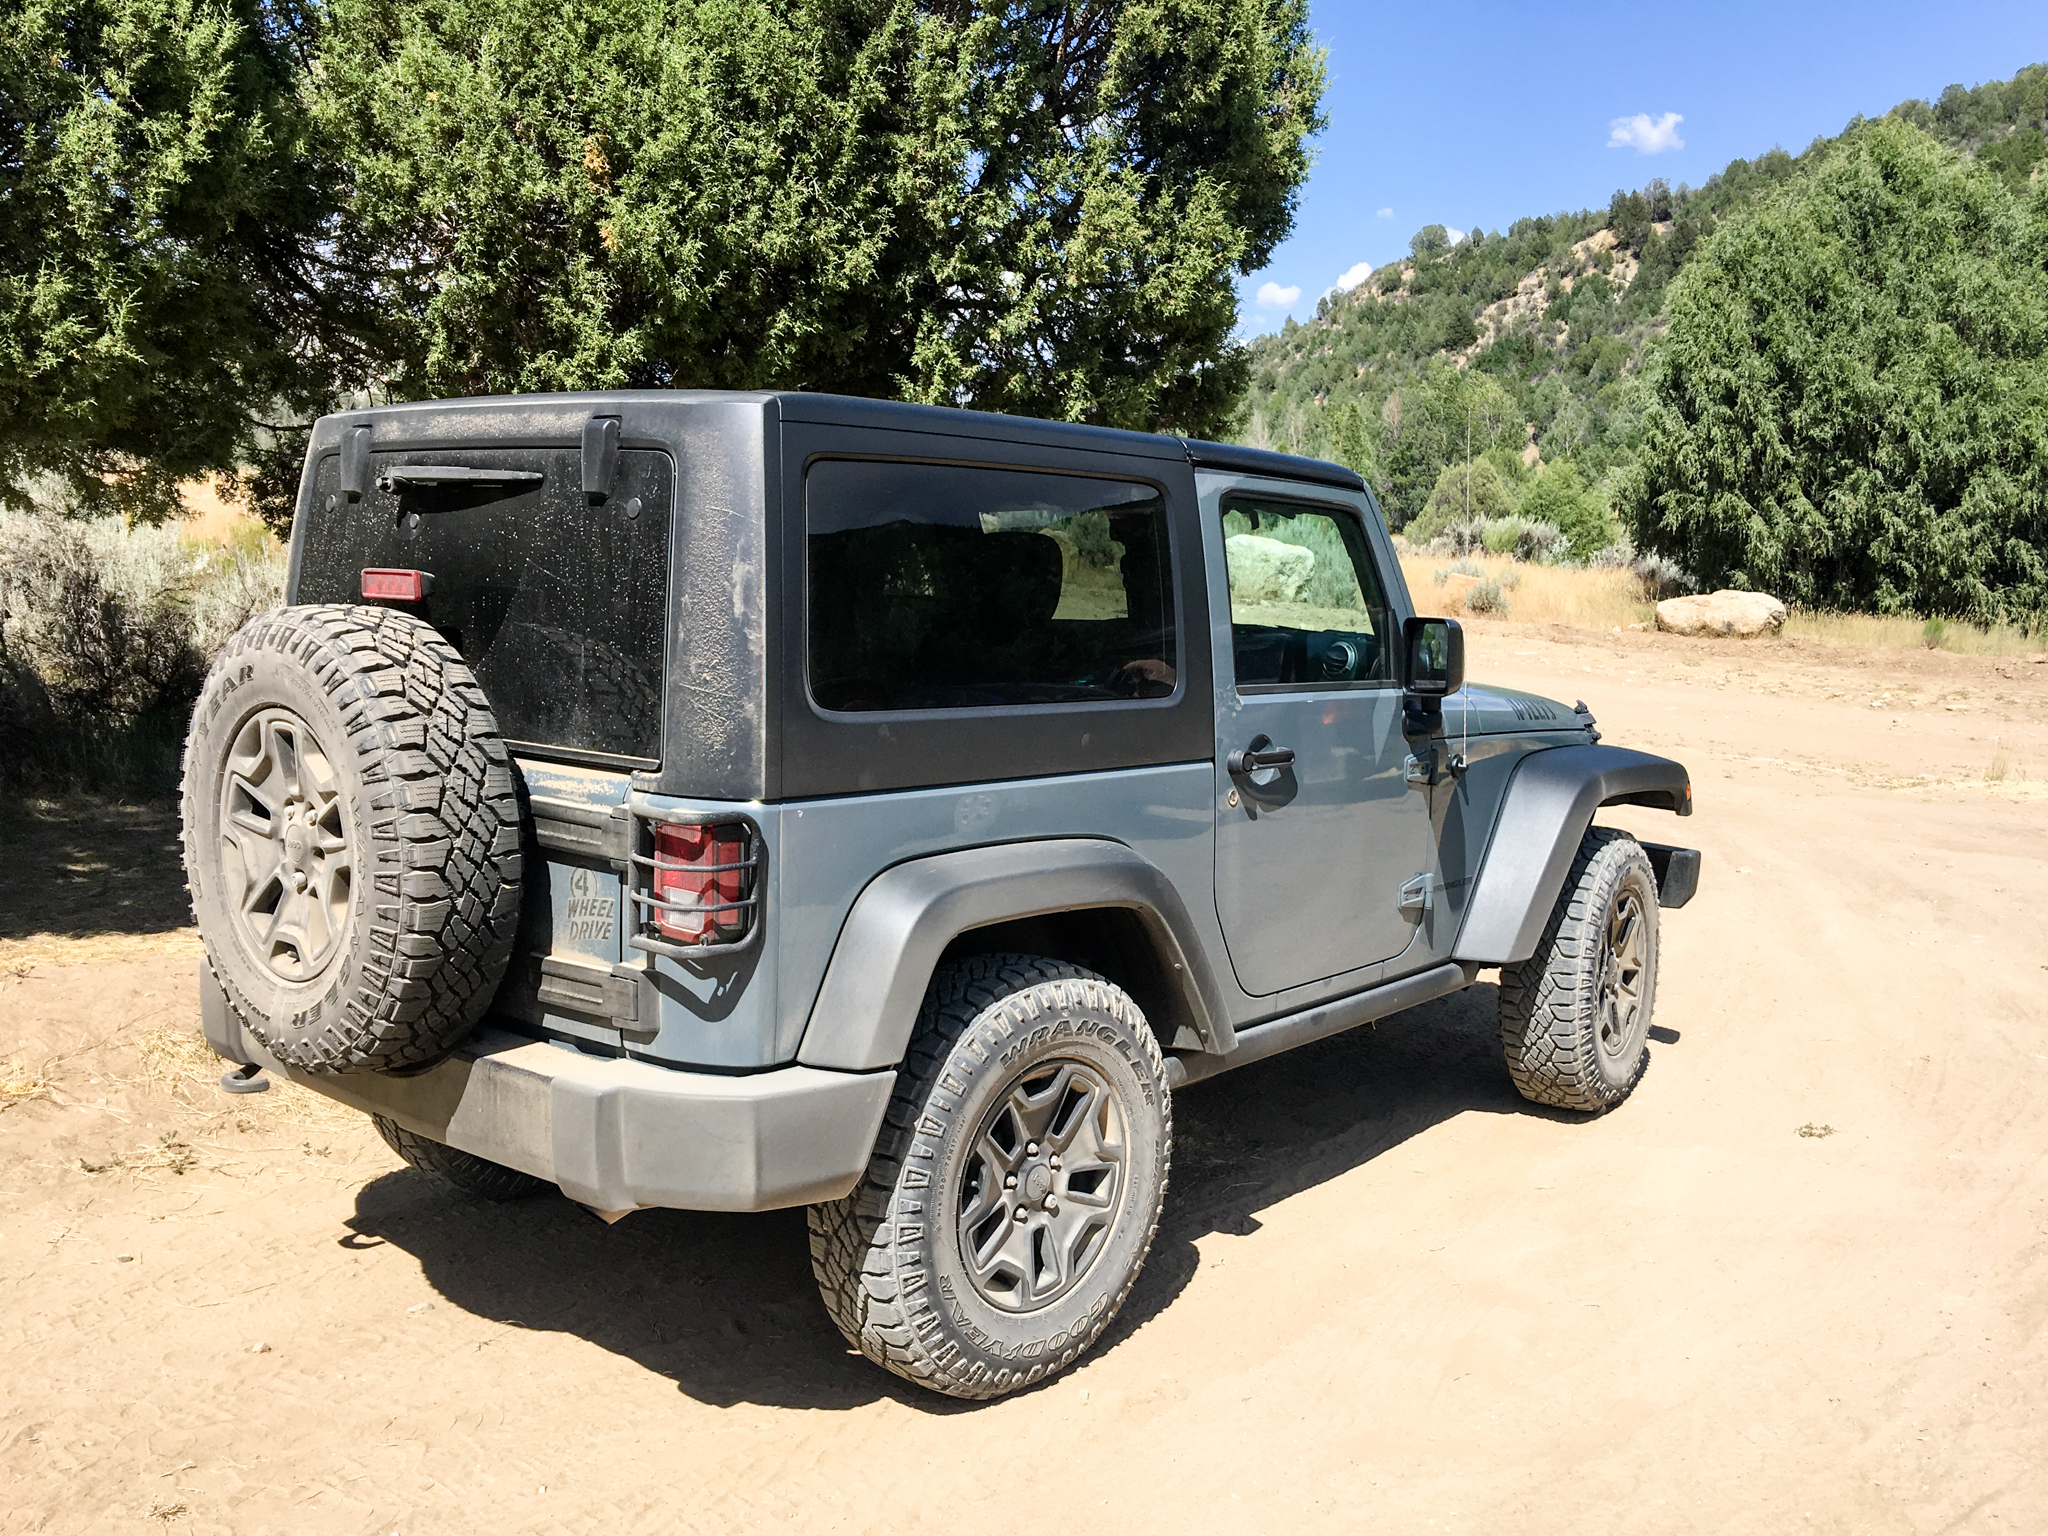 Chamberlain Ranch trailhead parking lot